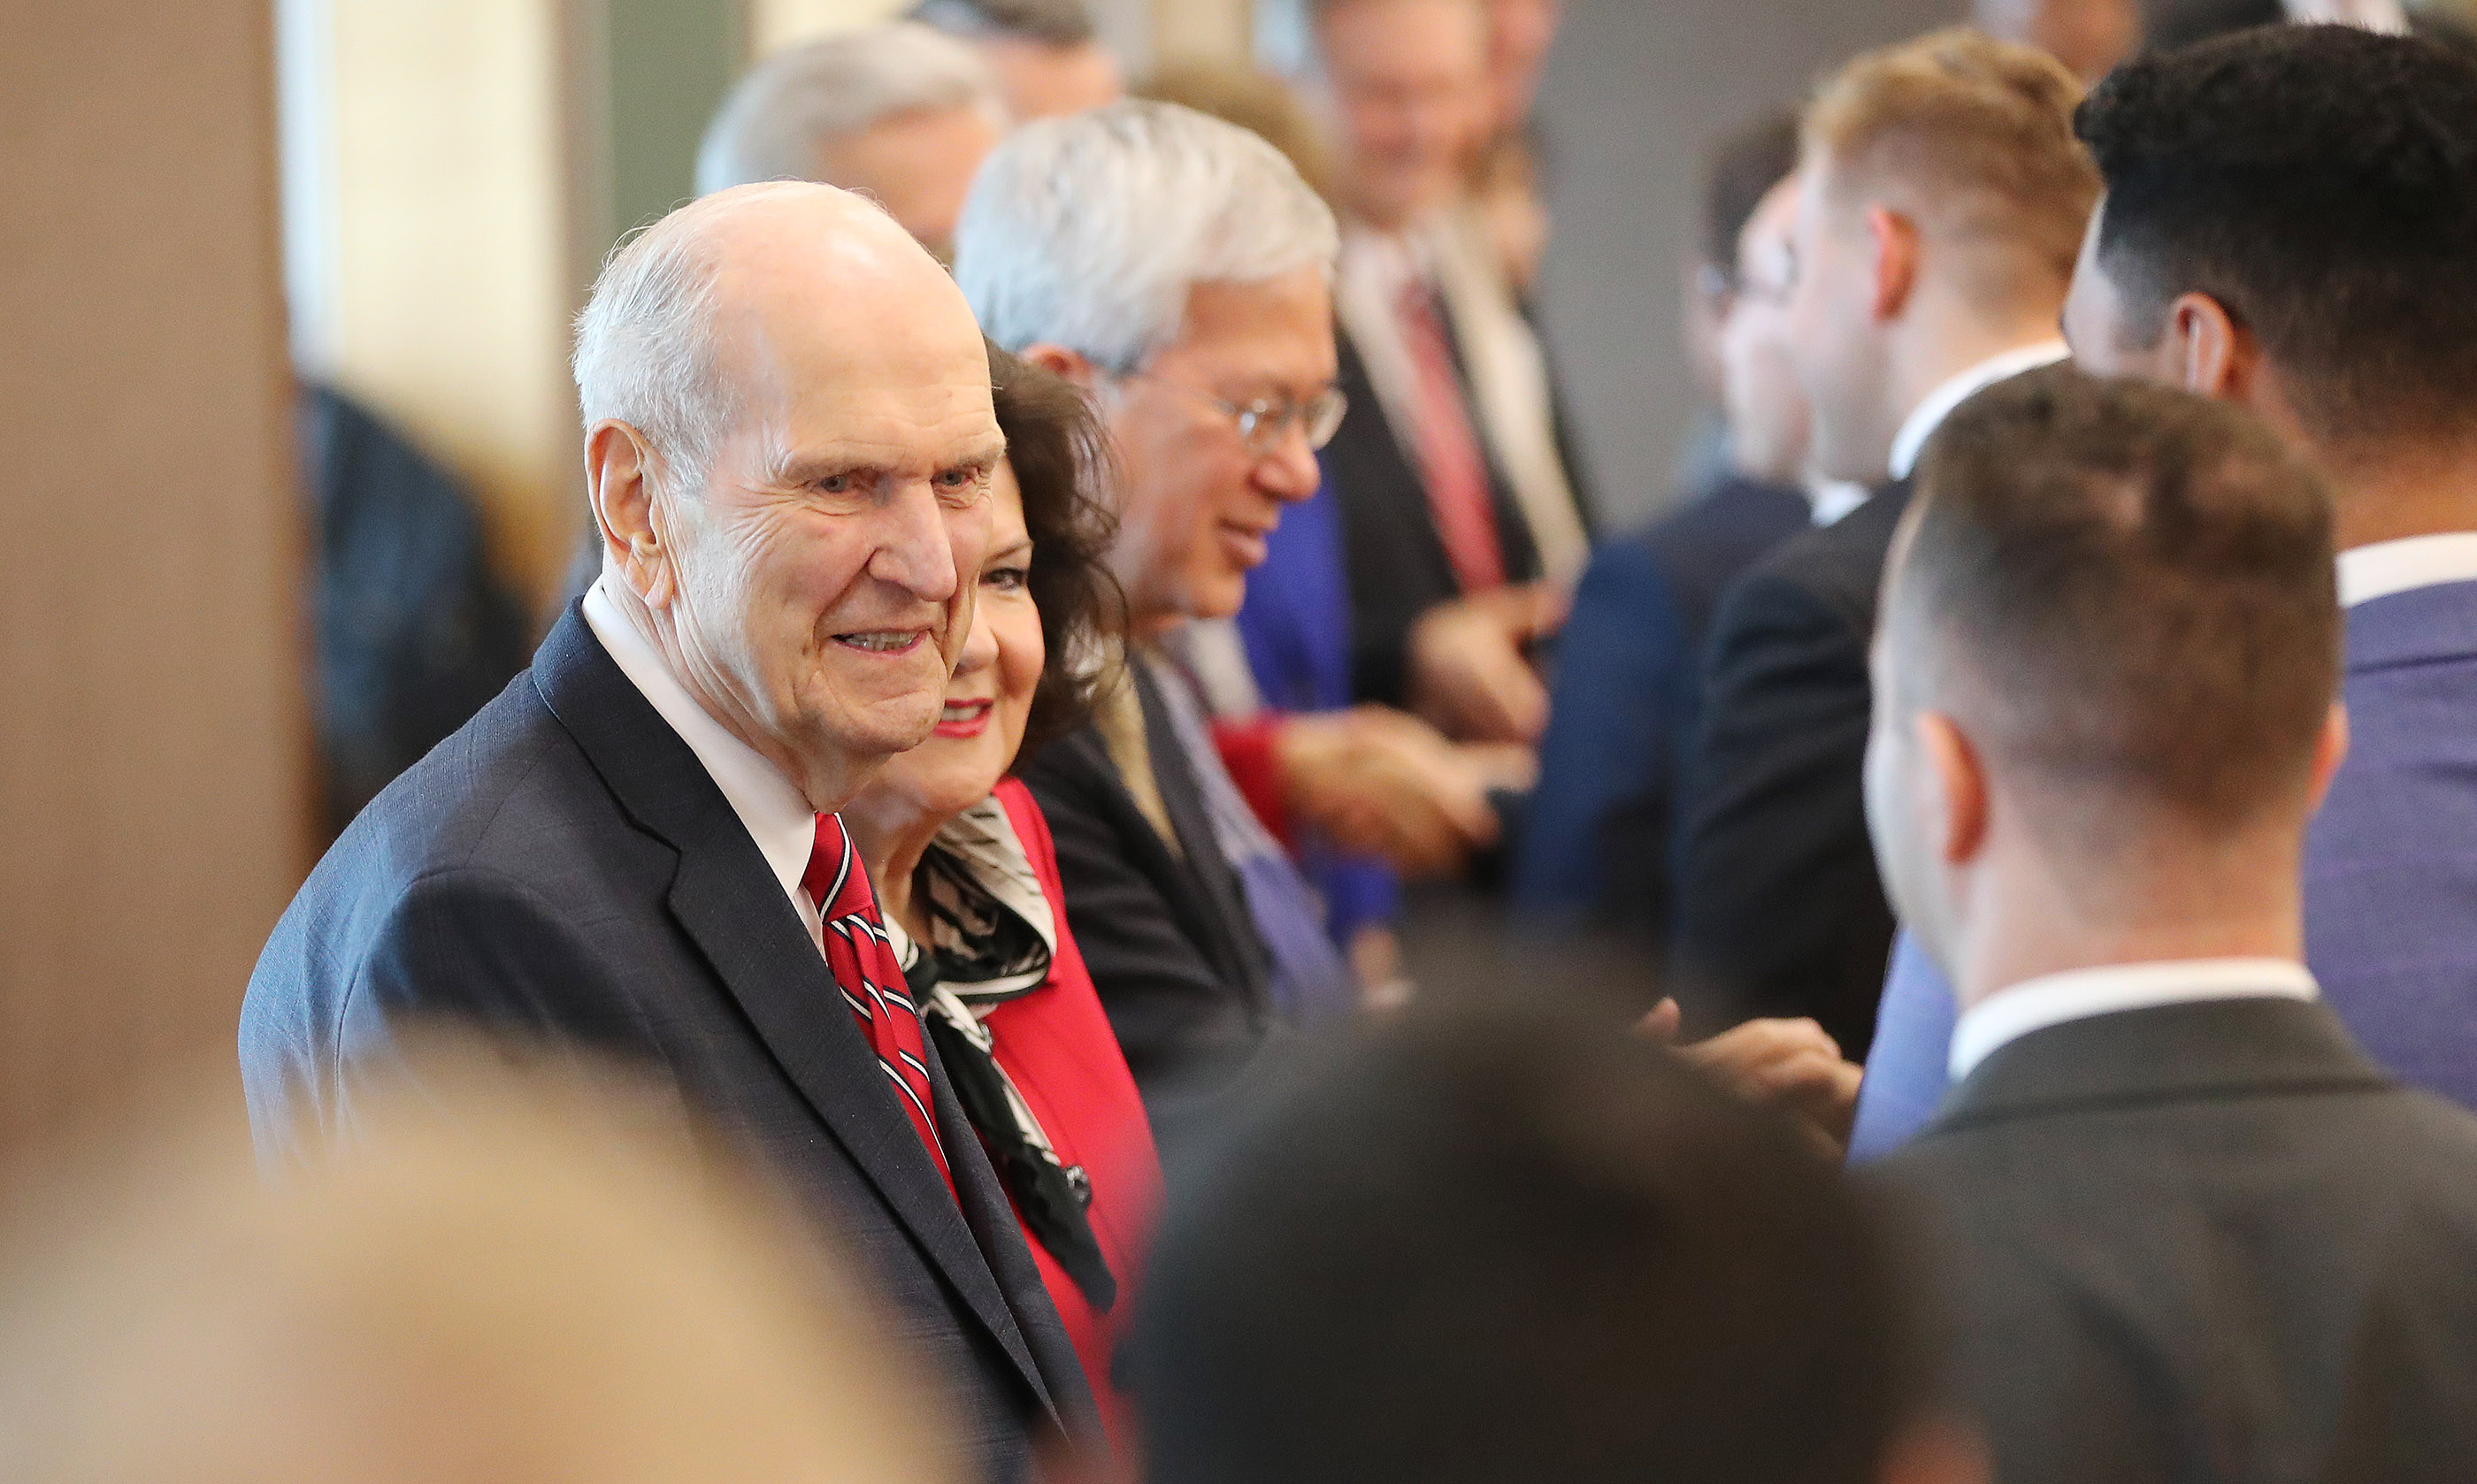 President Russell M. Nelson of The Church of Jesus Christ of Latter-day Saints meets with missionaries in Auckland, New Zealand, on Tuesday, May 21, 2019.